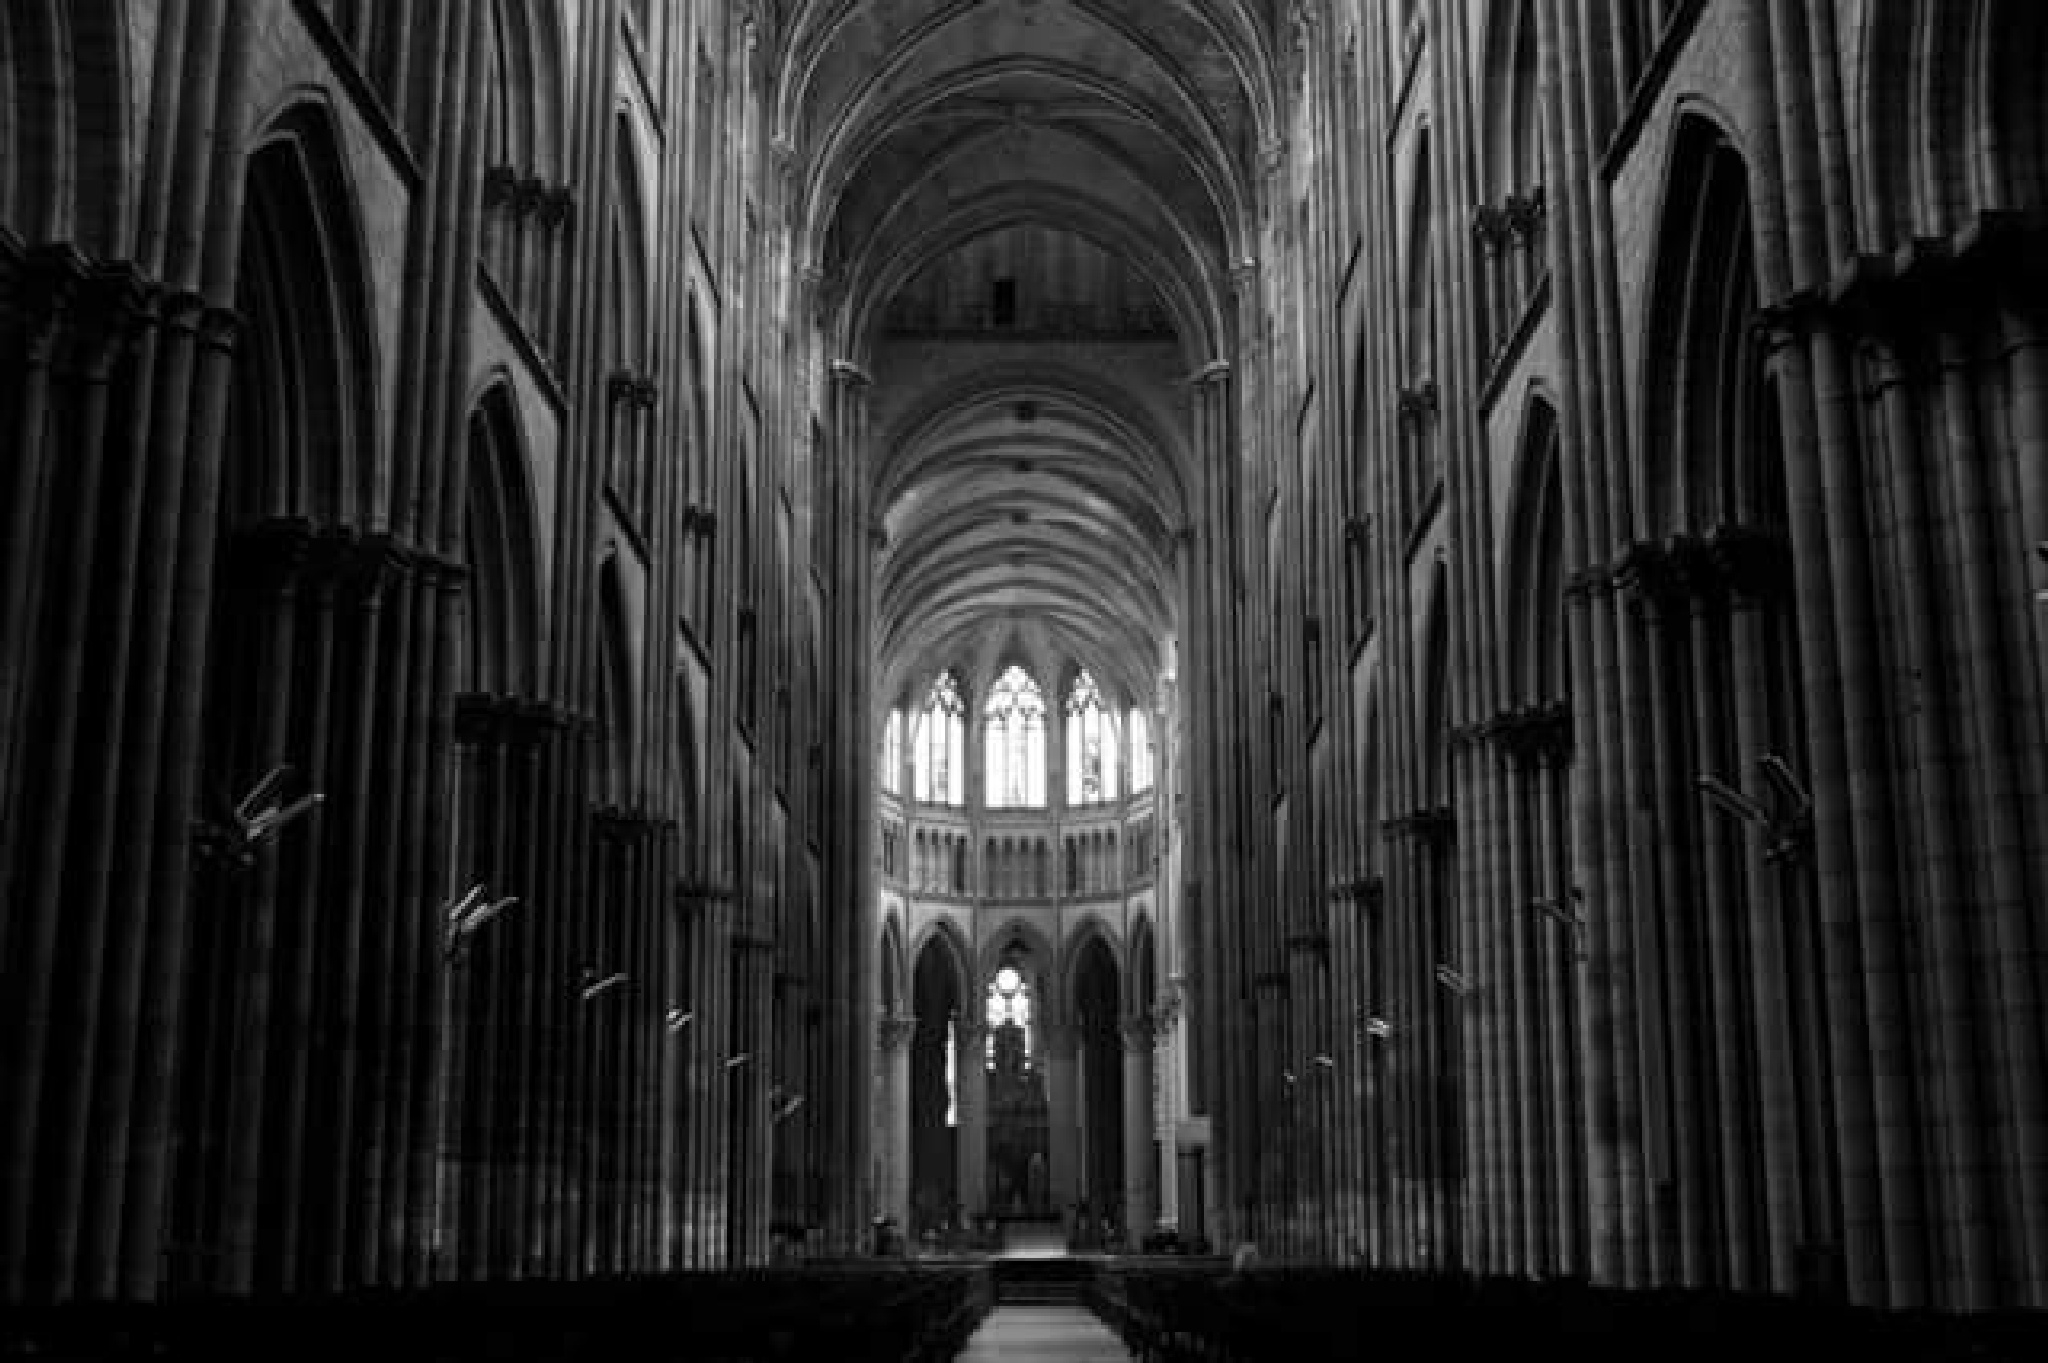 inside the Rouen cathedral by thierrylorenzo